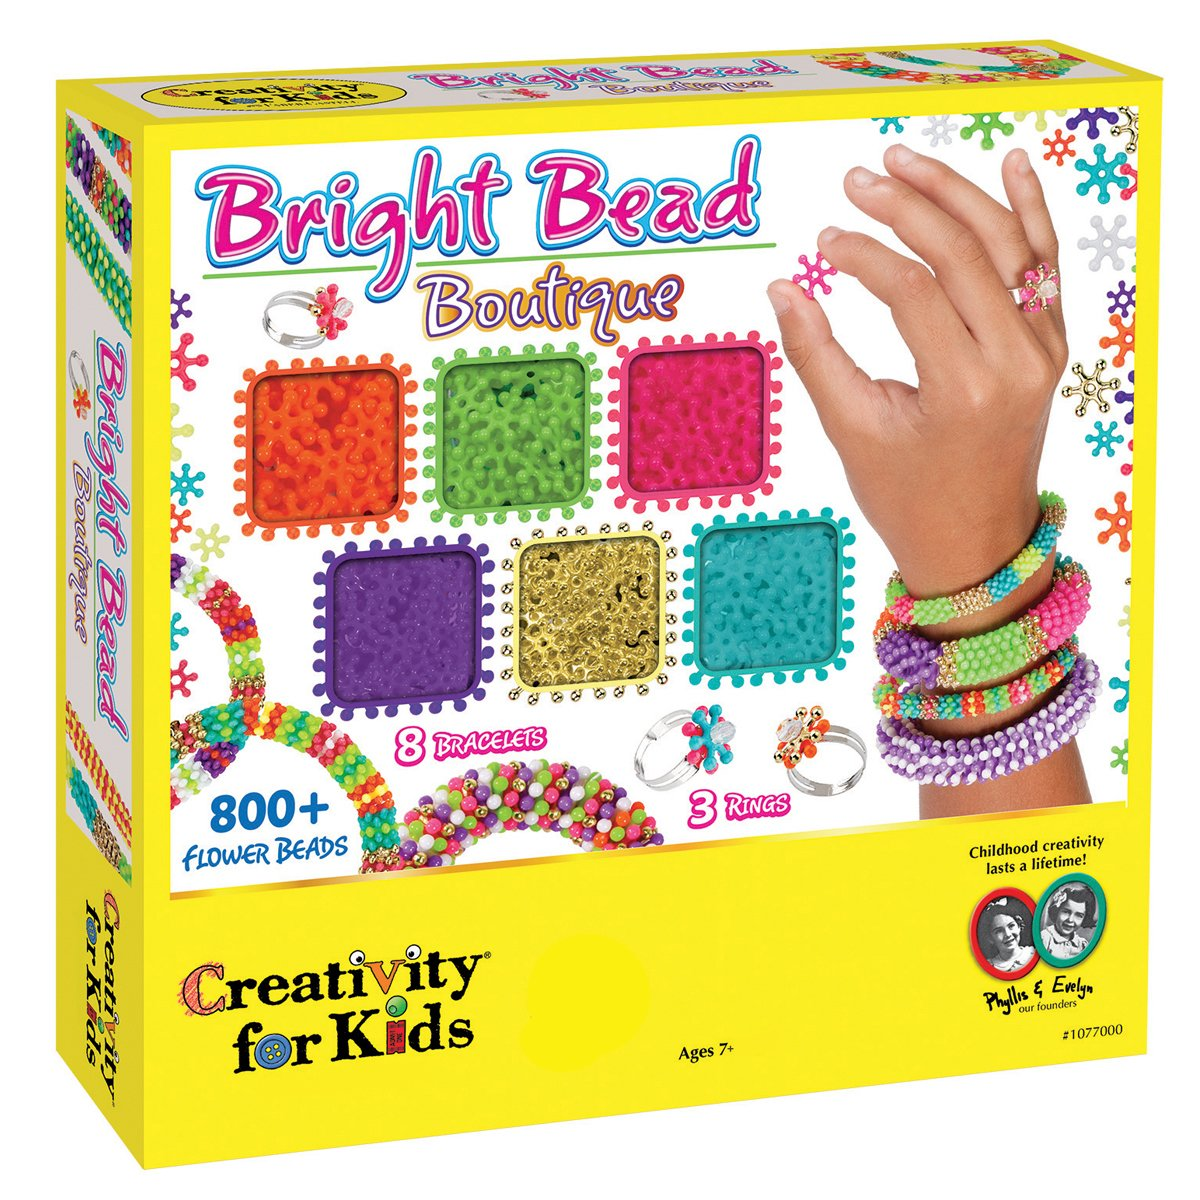 Creativity for Kids Bright Bead Boutique Kit 800 Flower Beads